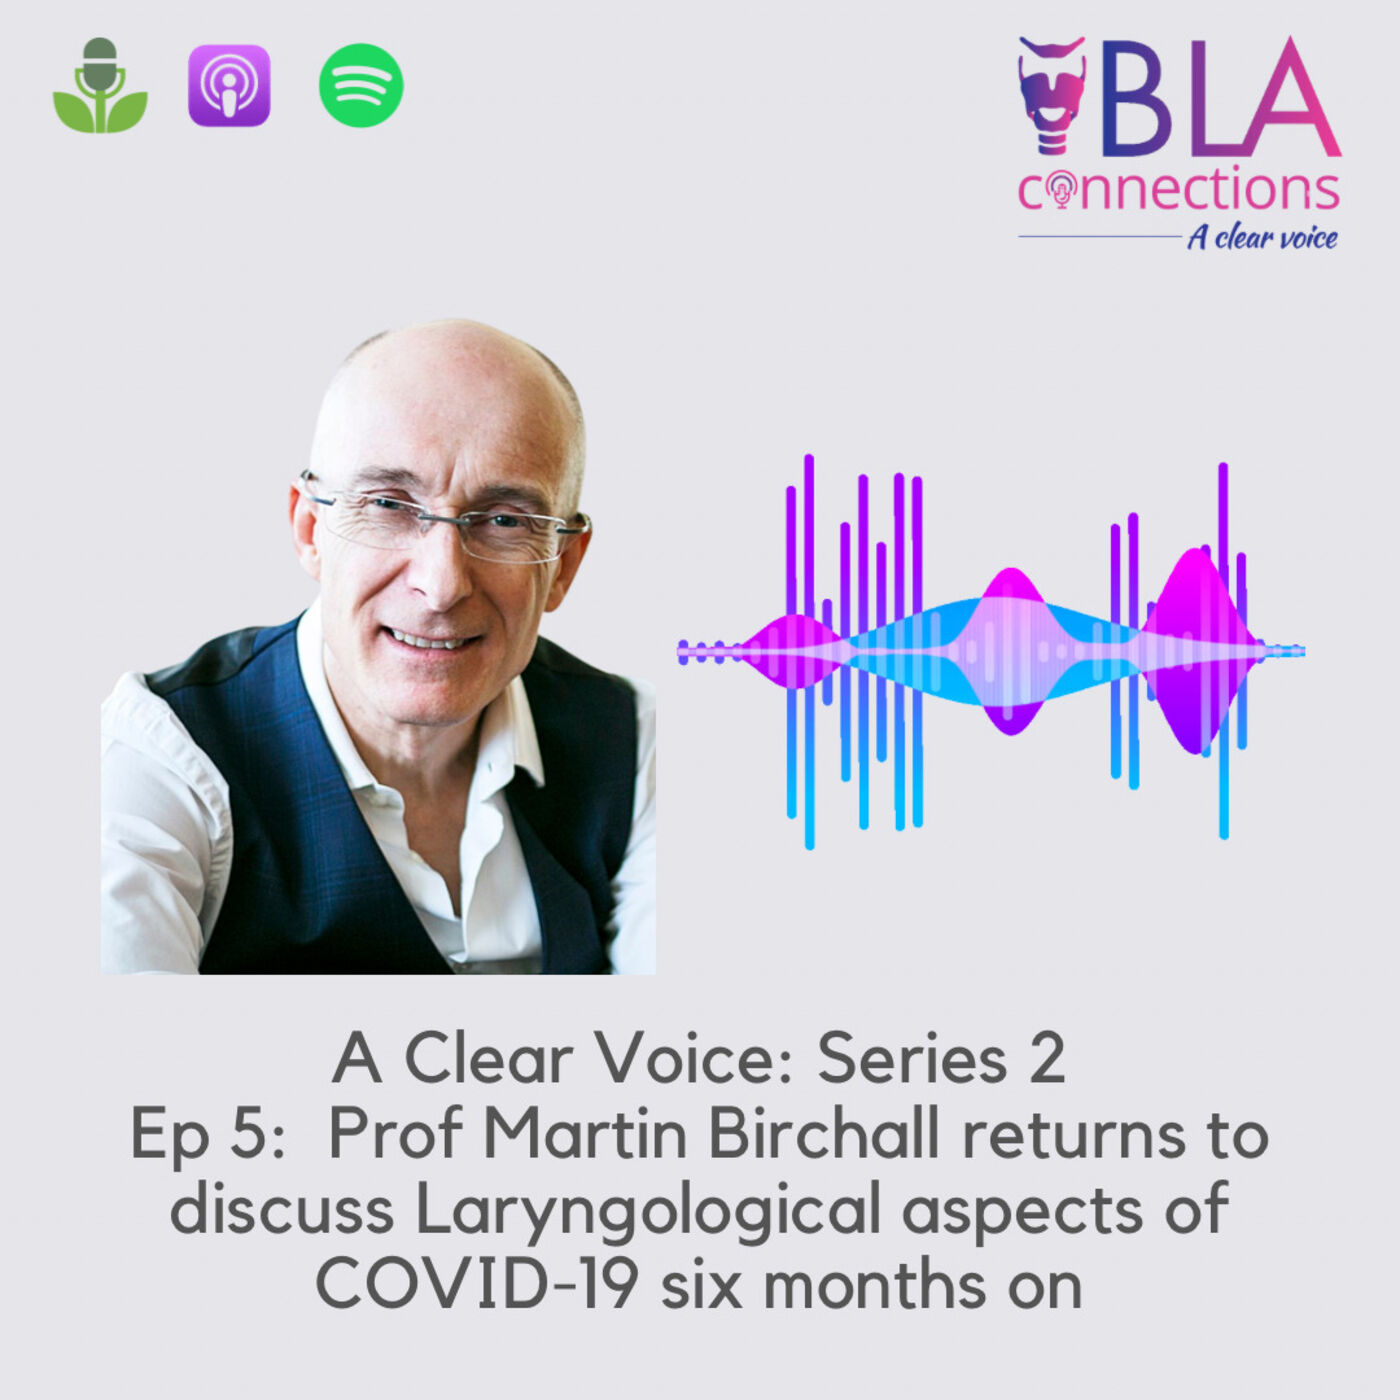 S2 Ep 5: Prof Martin Birchall returns to discuss Laryngological aspects of COVID-19 six months on